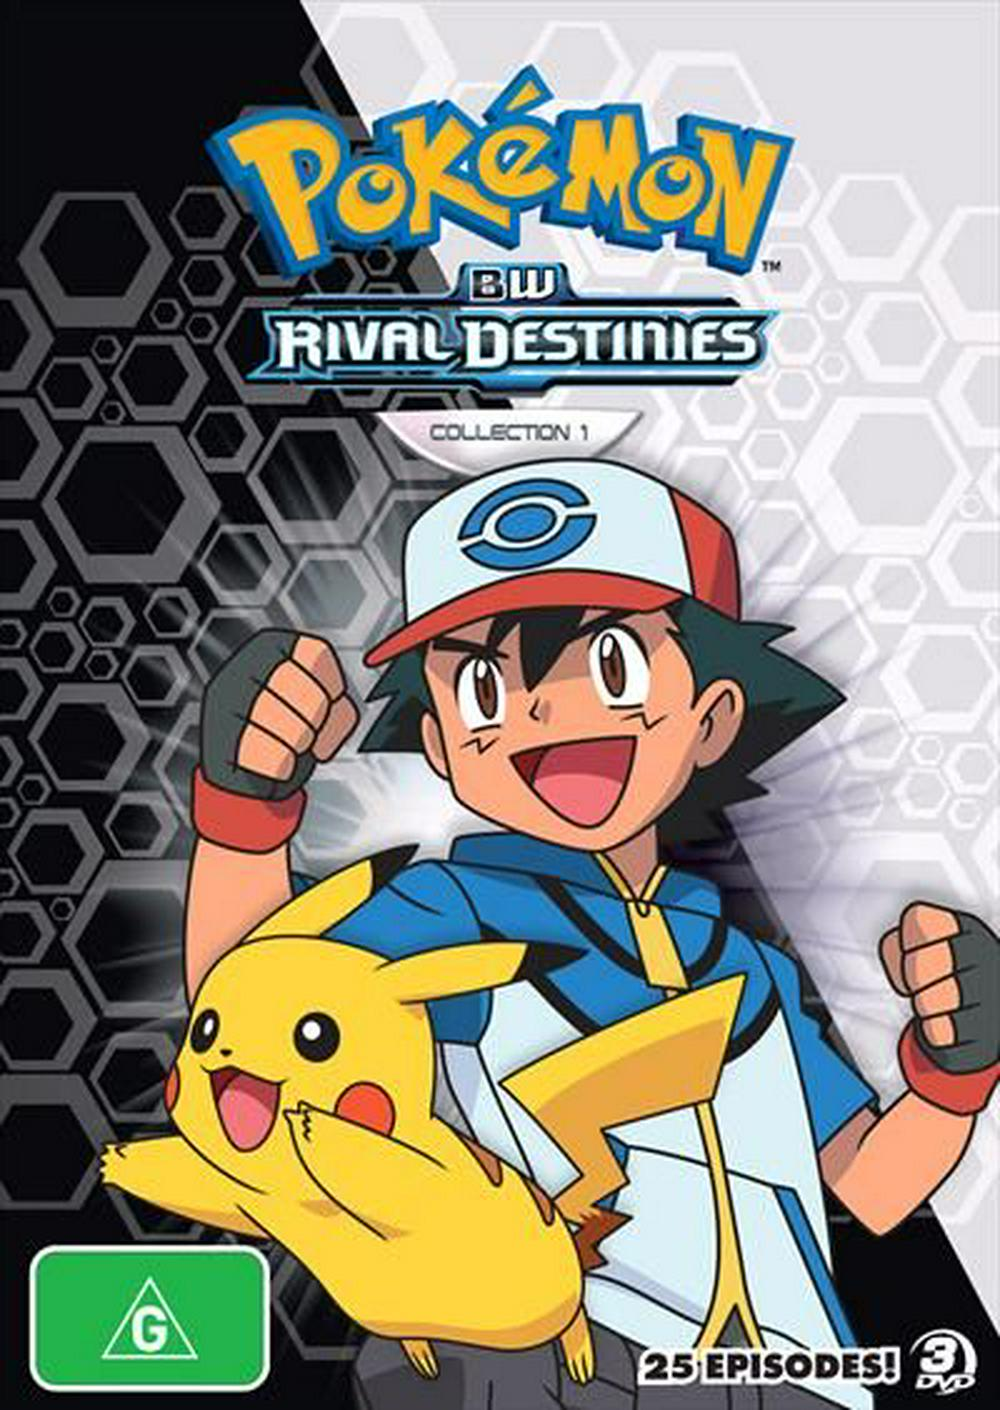 Pokemon - Rival Destinies : Collection 1 by Beyond Home Entertainment, ISBN: 9318500043580